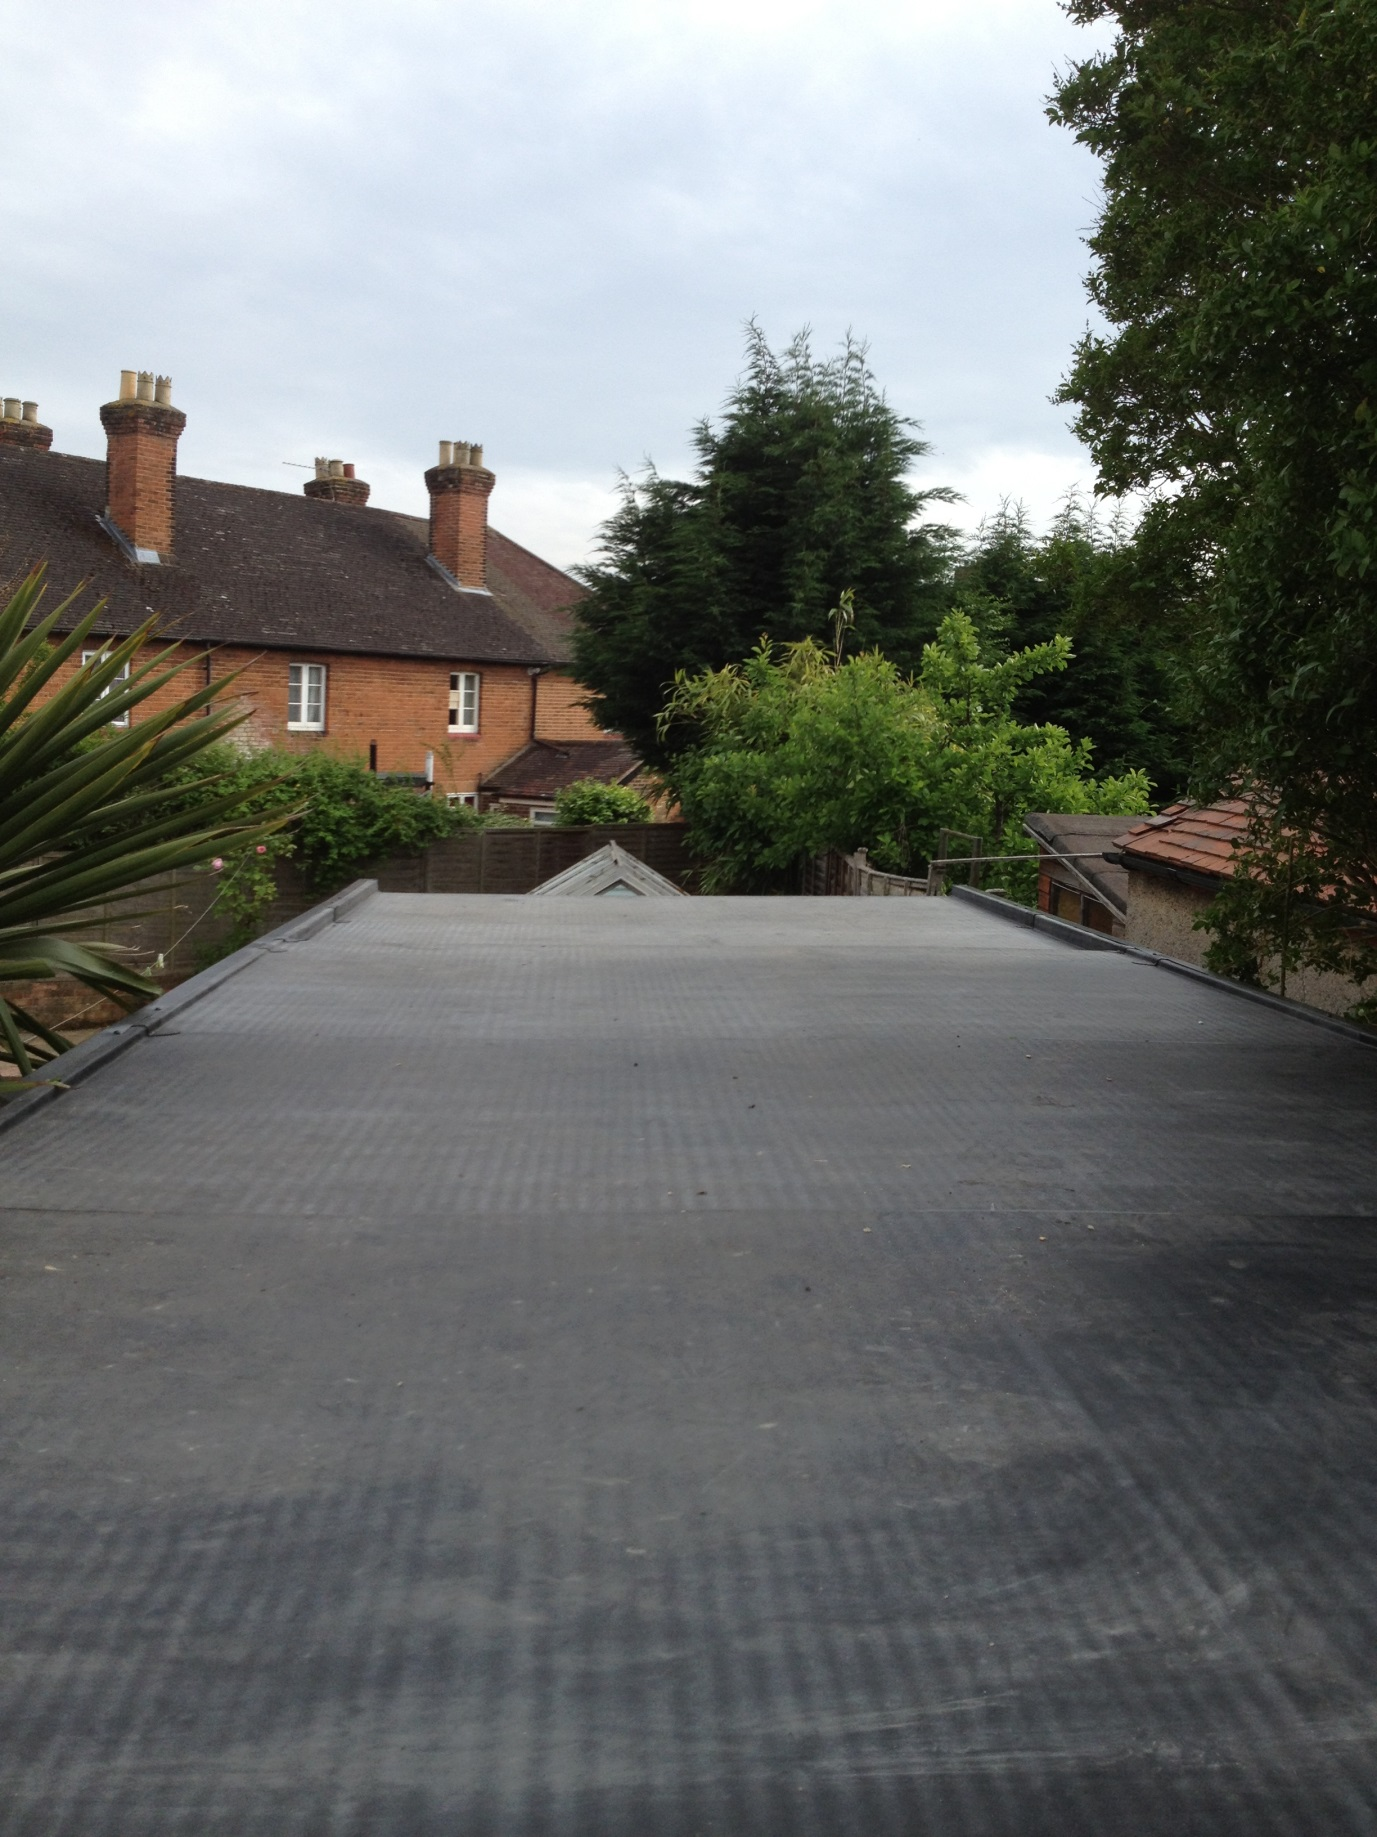 Flat garage roof construction, repair & replacement with an EPDM rubber roofing membrane